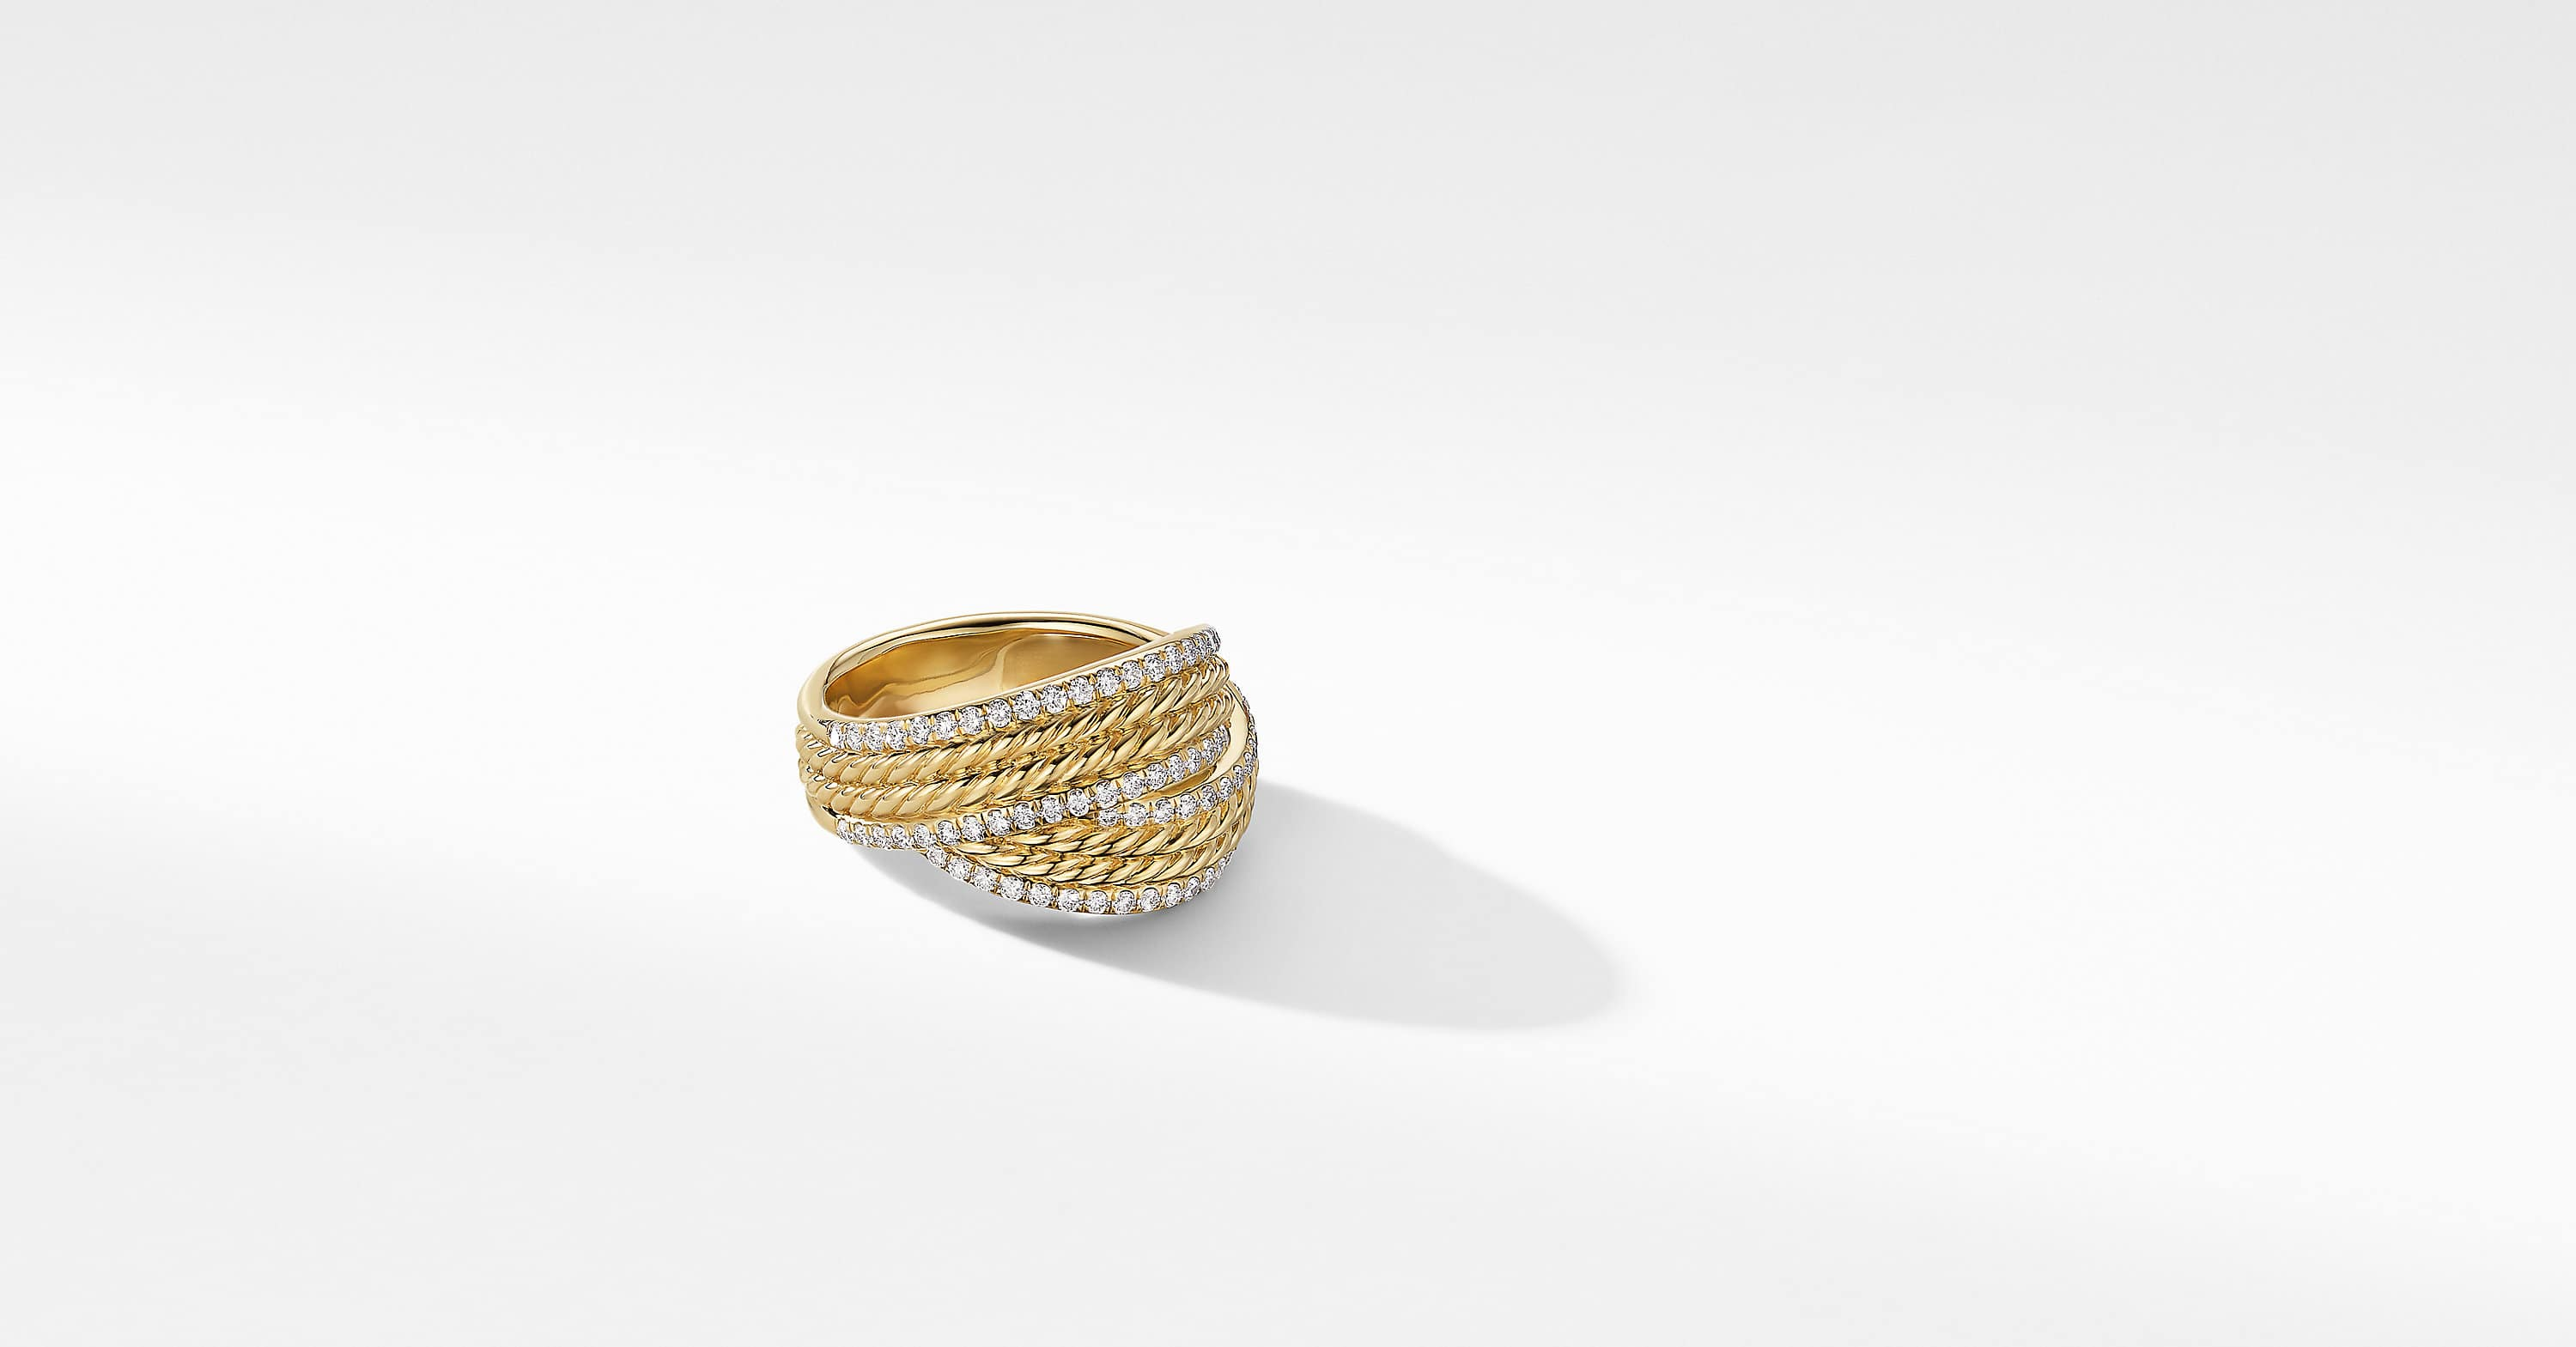 DY Origami Ring in 18K Yellow Gold with Pavé Rails, 13mm